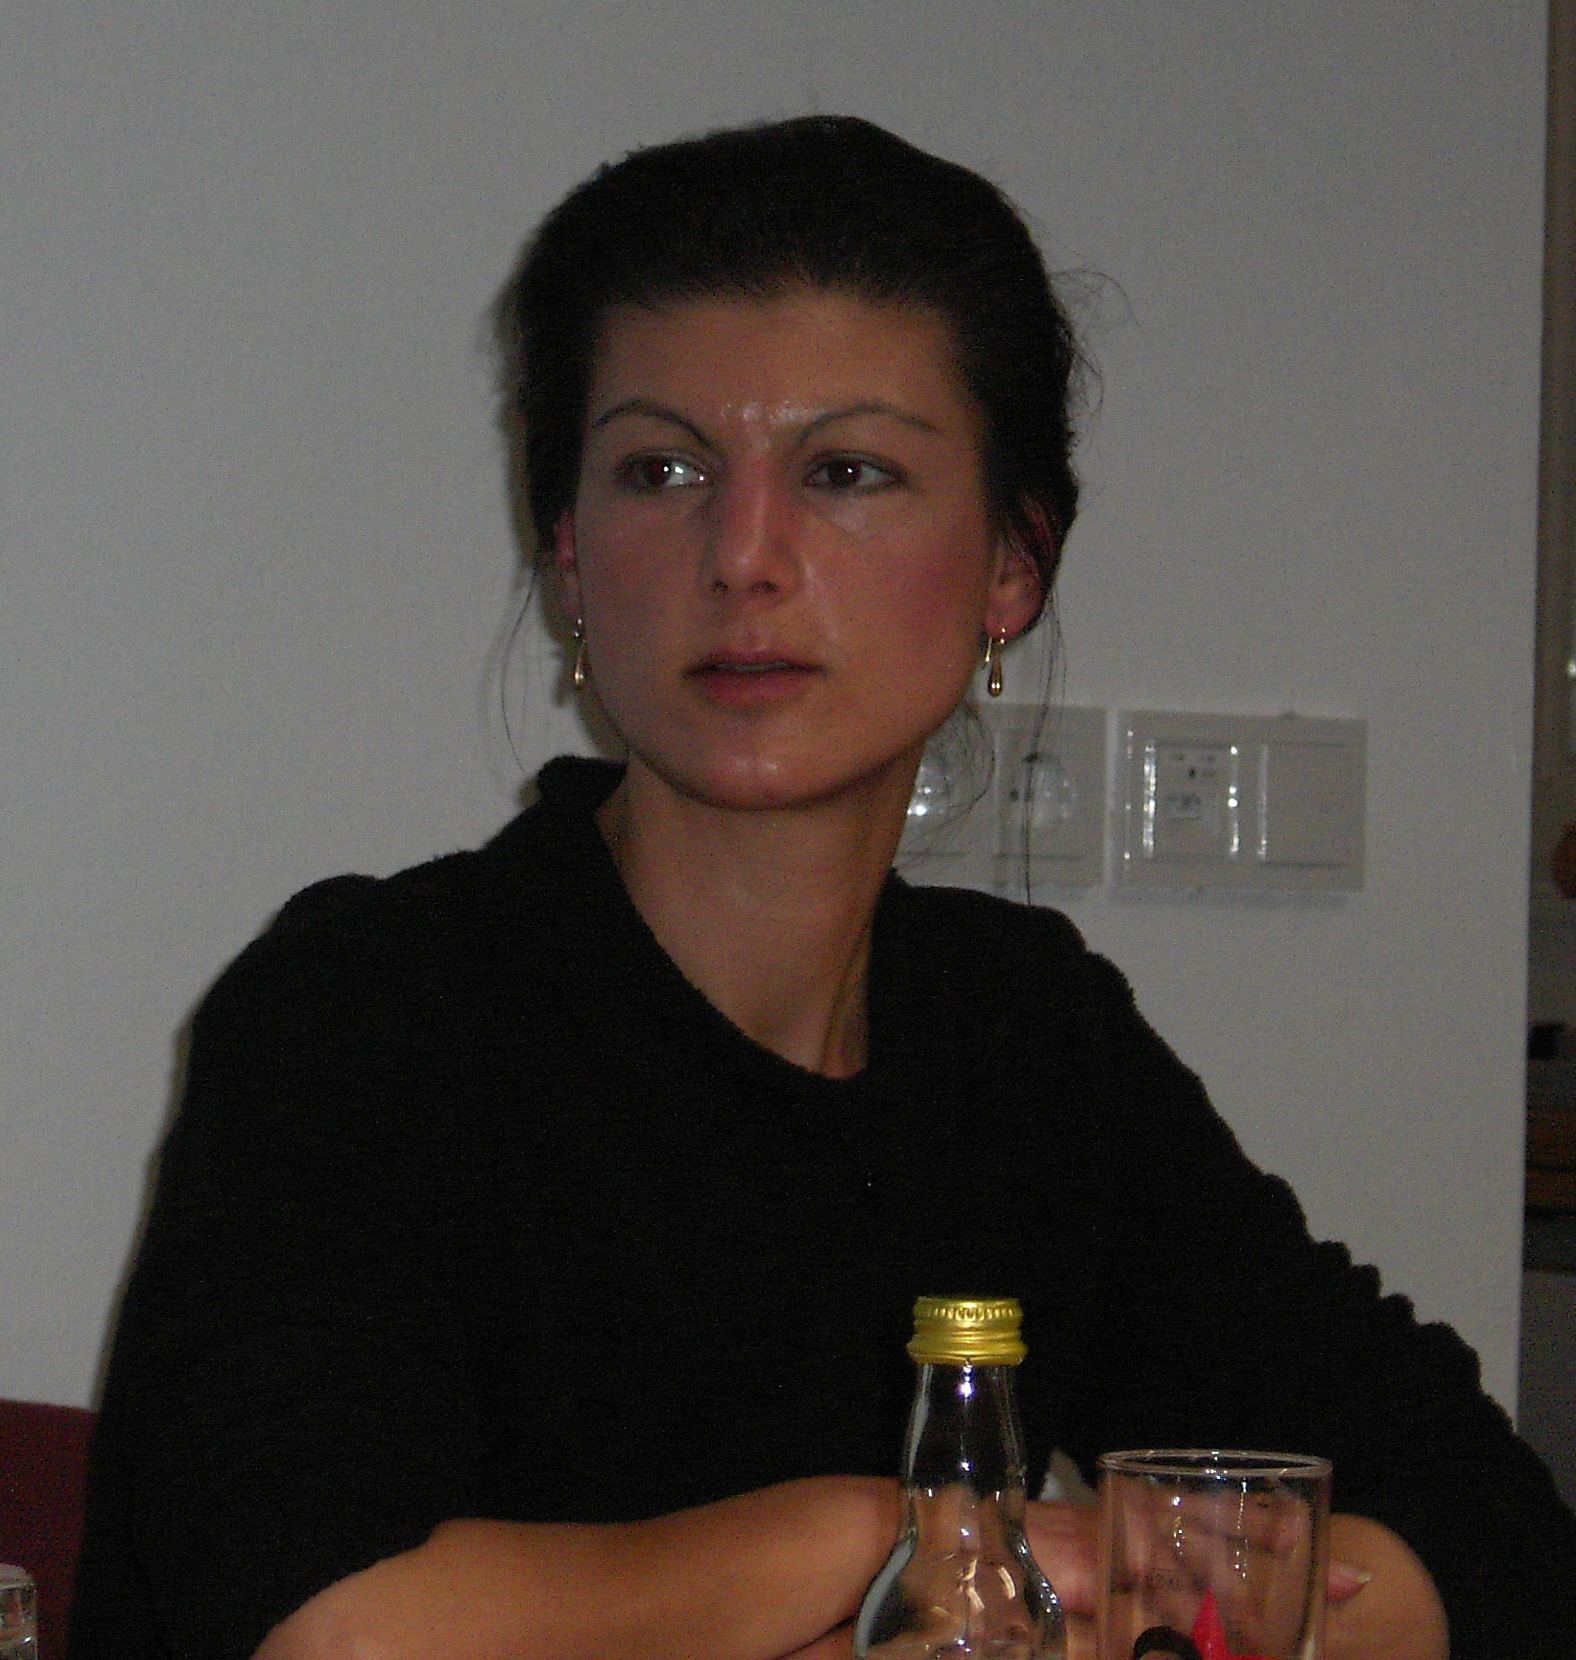 https://upload.wikimedia.org/wikipedia/commons/d/dc/Sahra_Wagenknecht-02.jpg